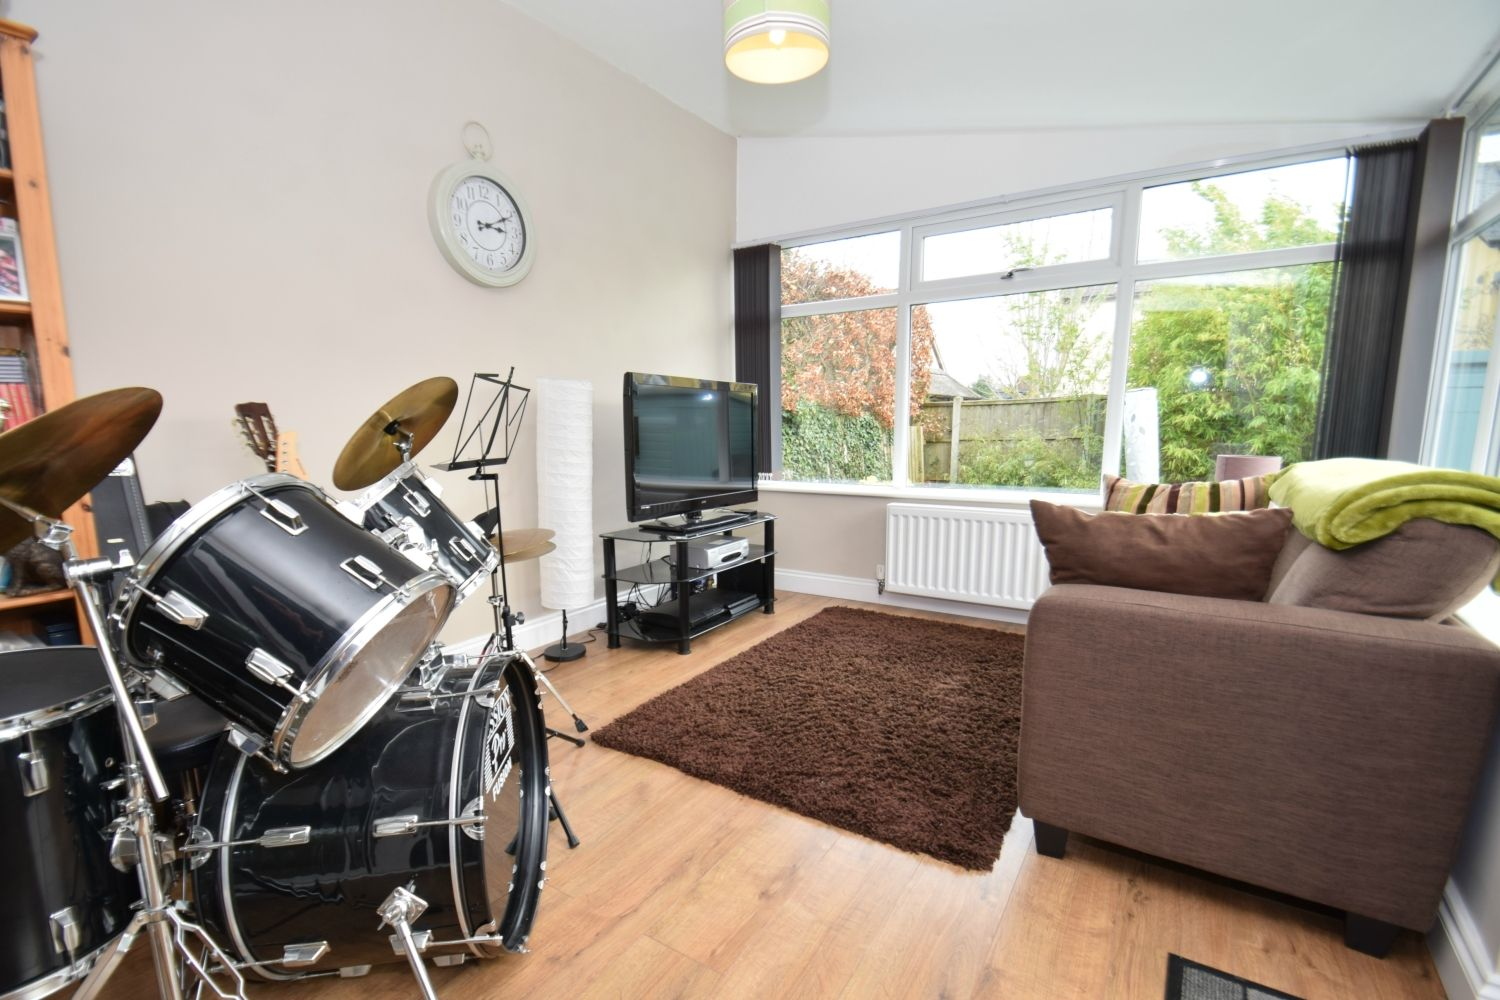 3 bed detached for sale in Foxes Close, Blackwell, B60 8